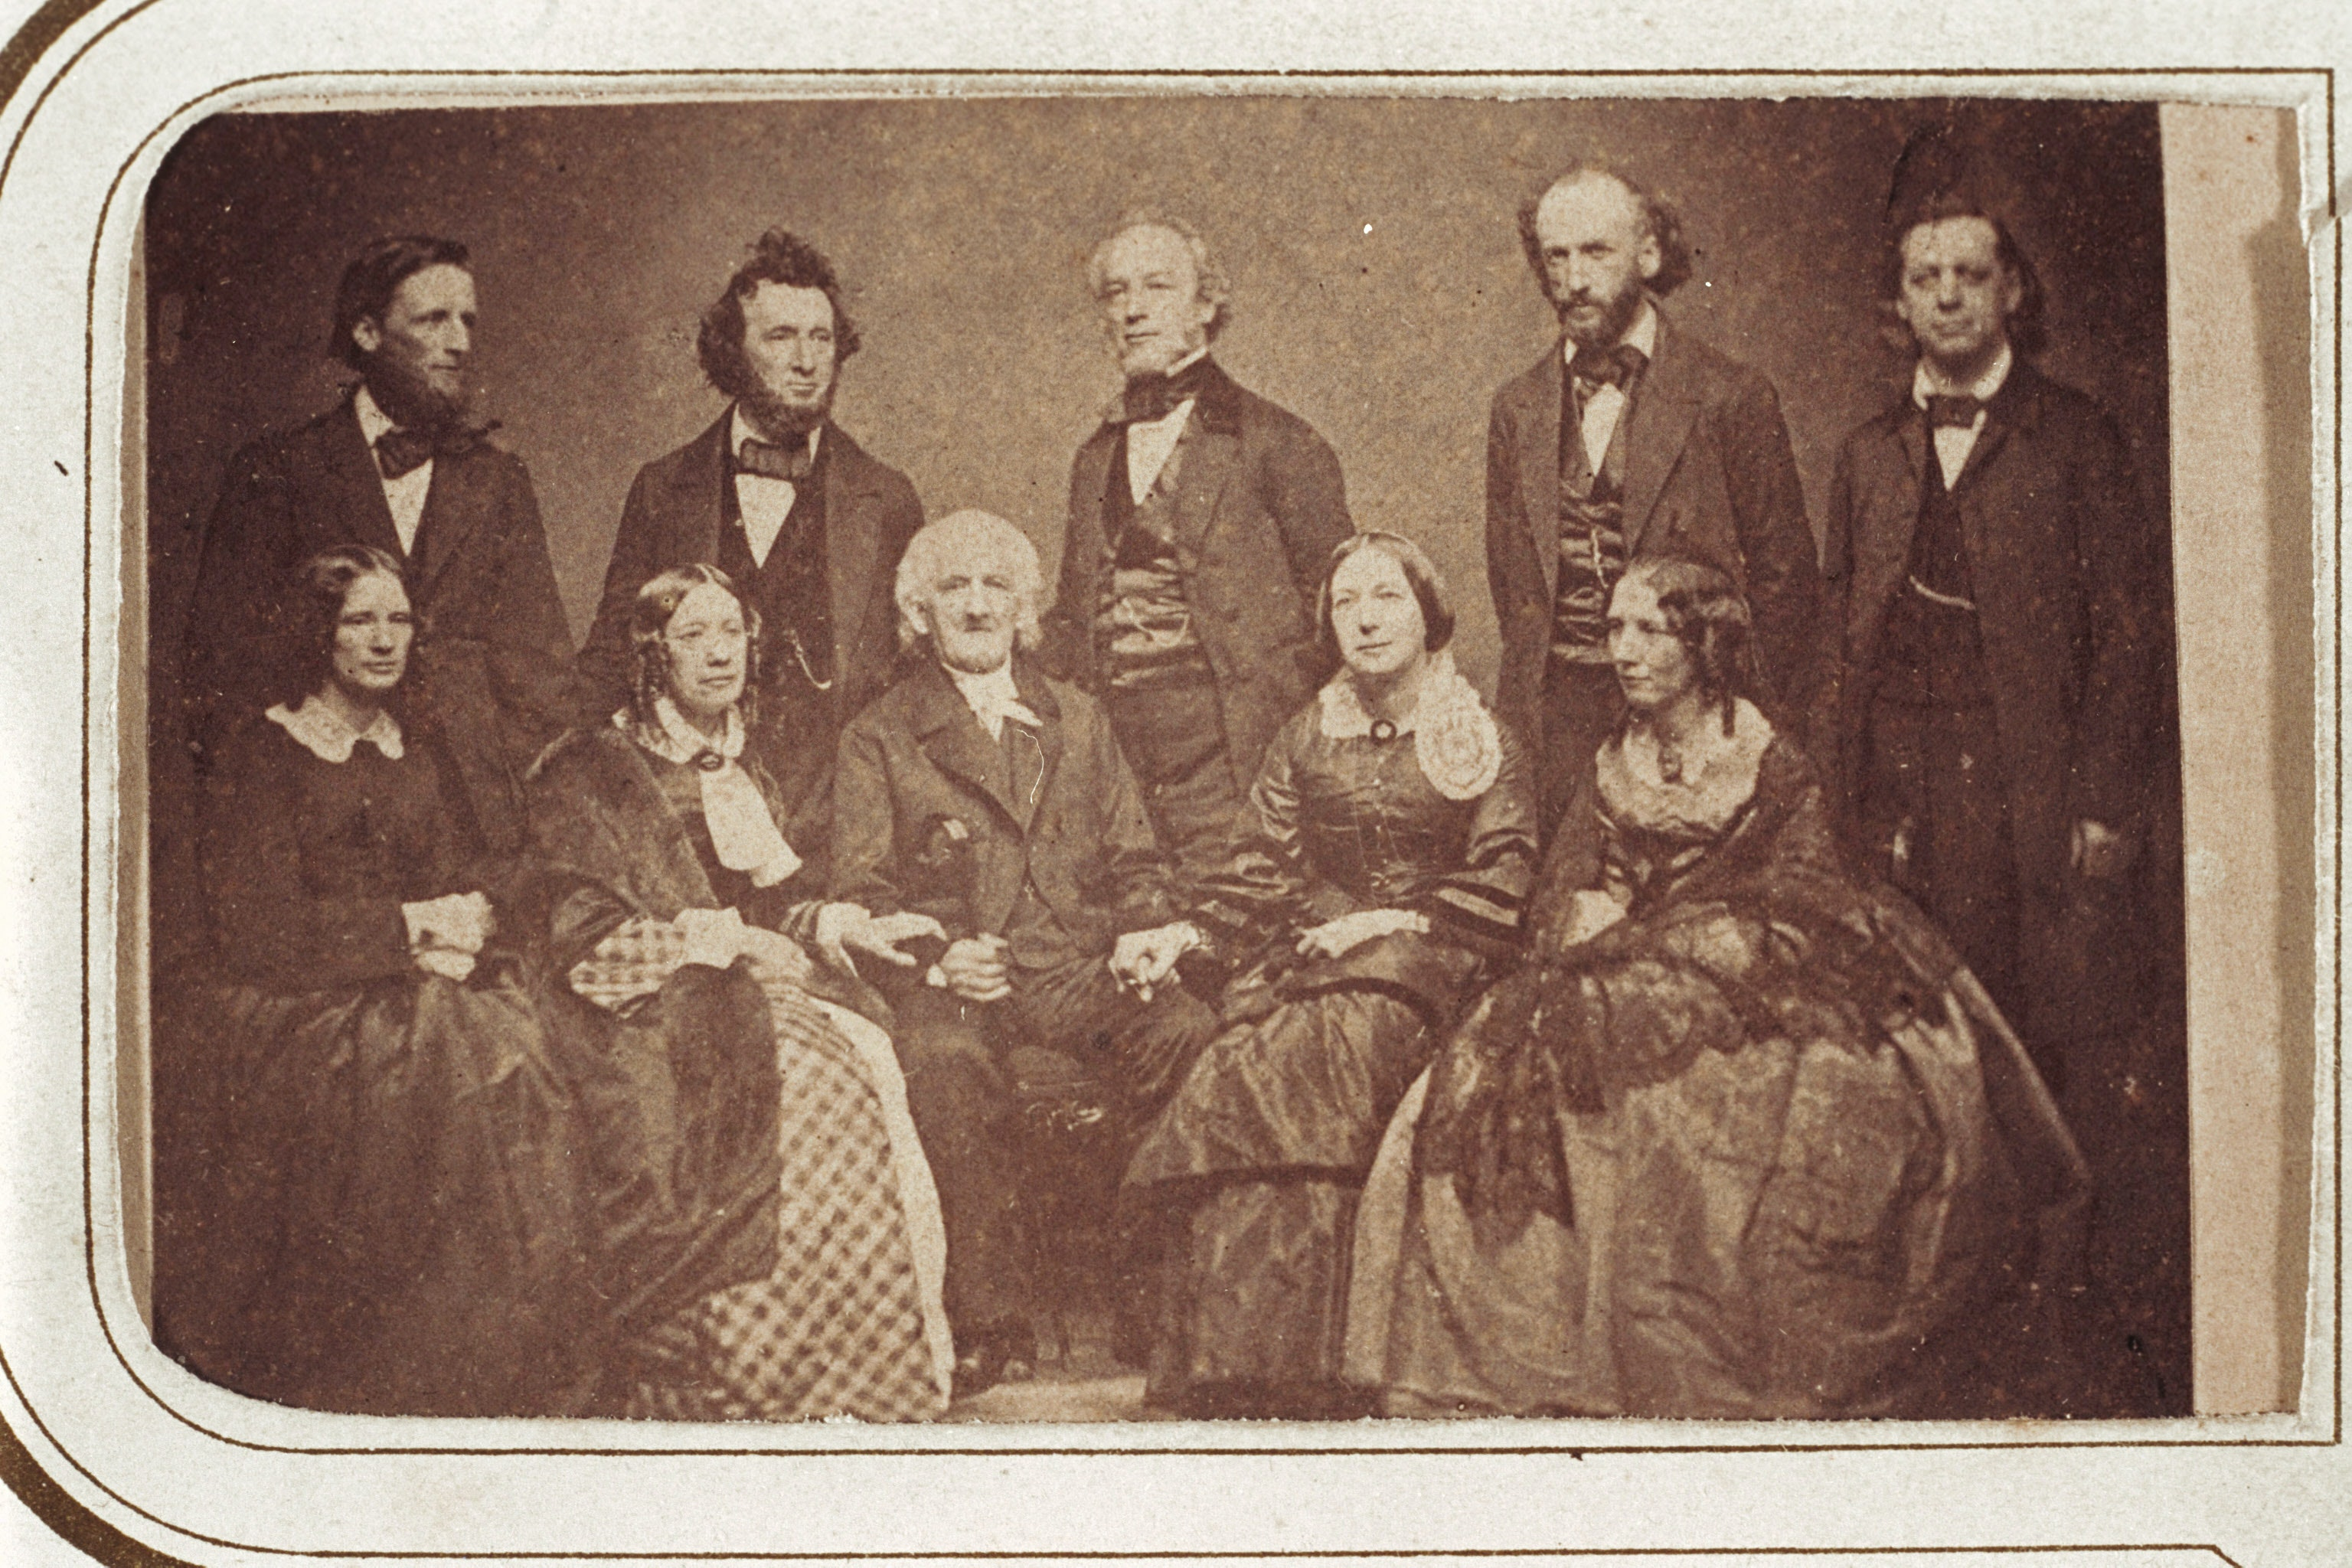 Group portrait of the Beecher family. Standing from left to right Thomas, William, Edward, Charles, Henry Ward, and seated from left to right, Isabella, Catherine, Lyman, Mary, and Harriet